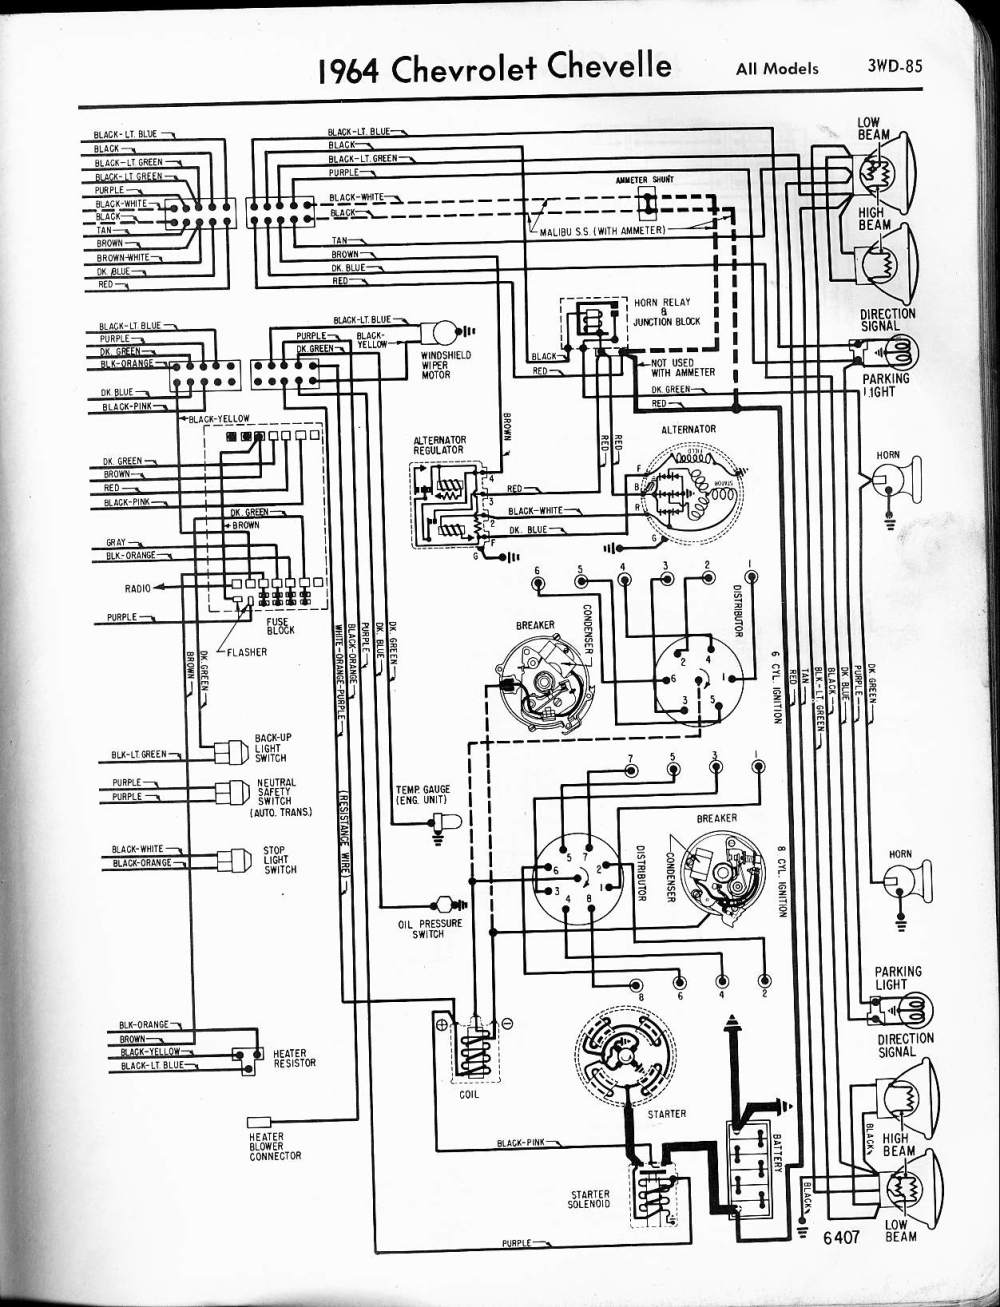 medium resolution of 1967 chevelle wiring diagram pdf wiring diagram inside 1967 chevelle wiring diagram pdf wiring diagram technic